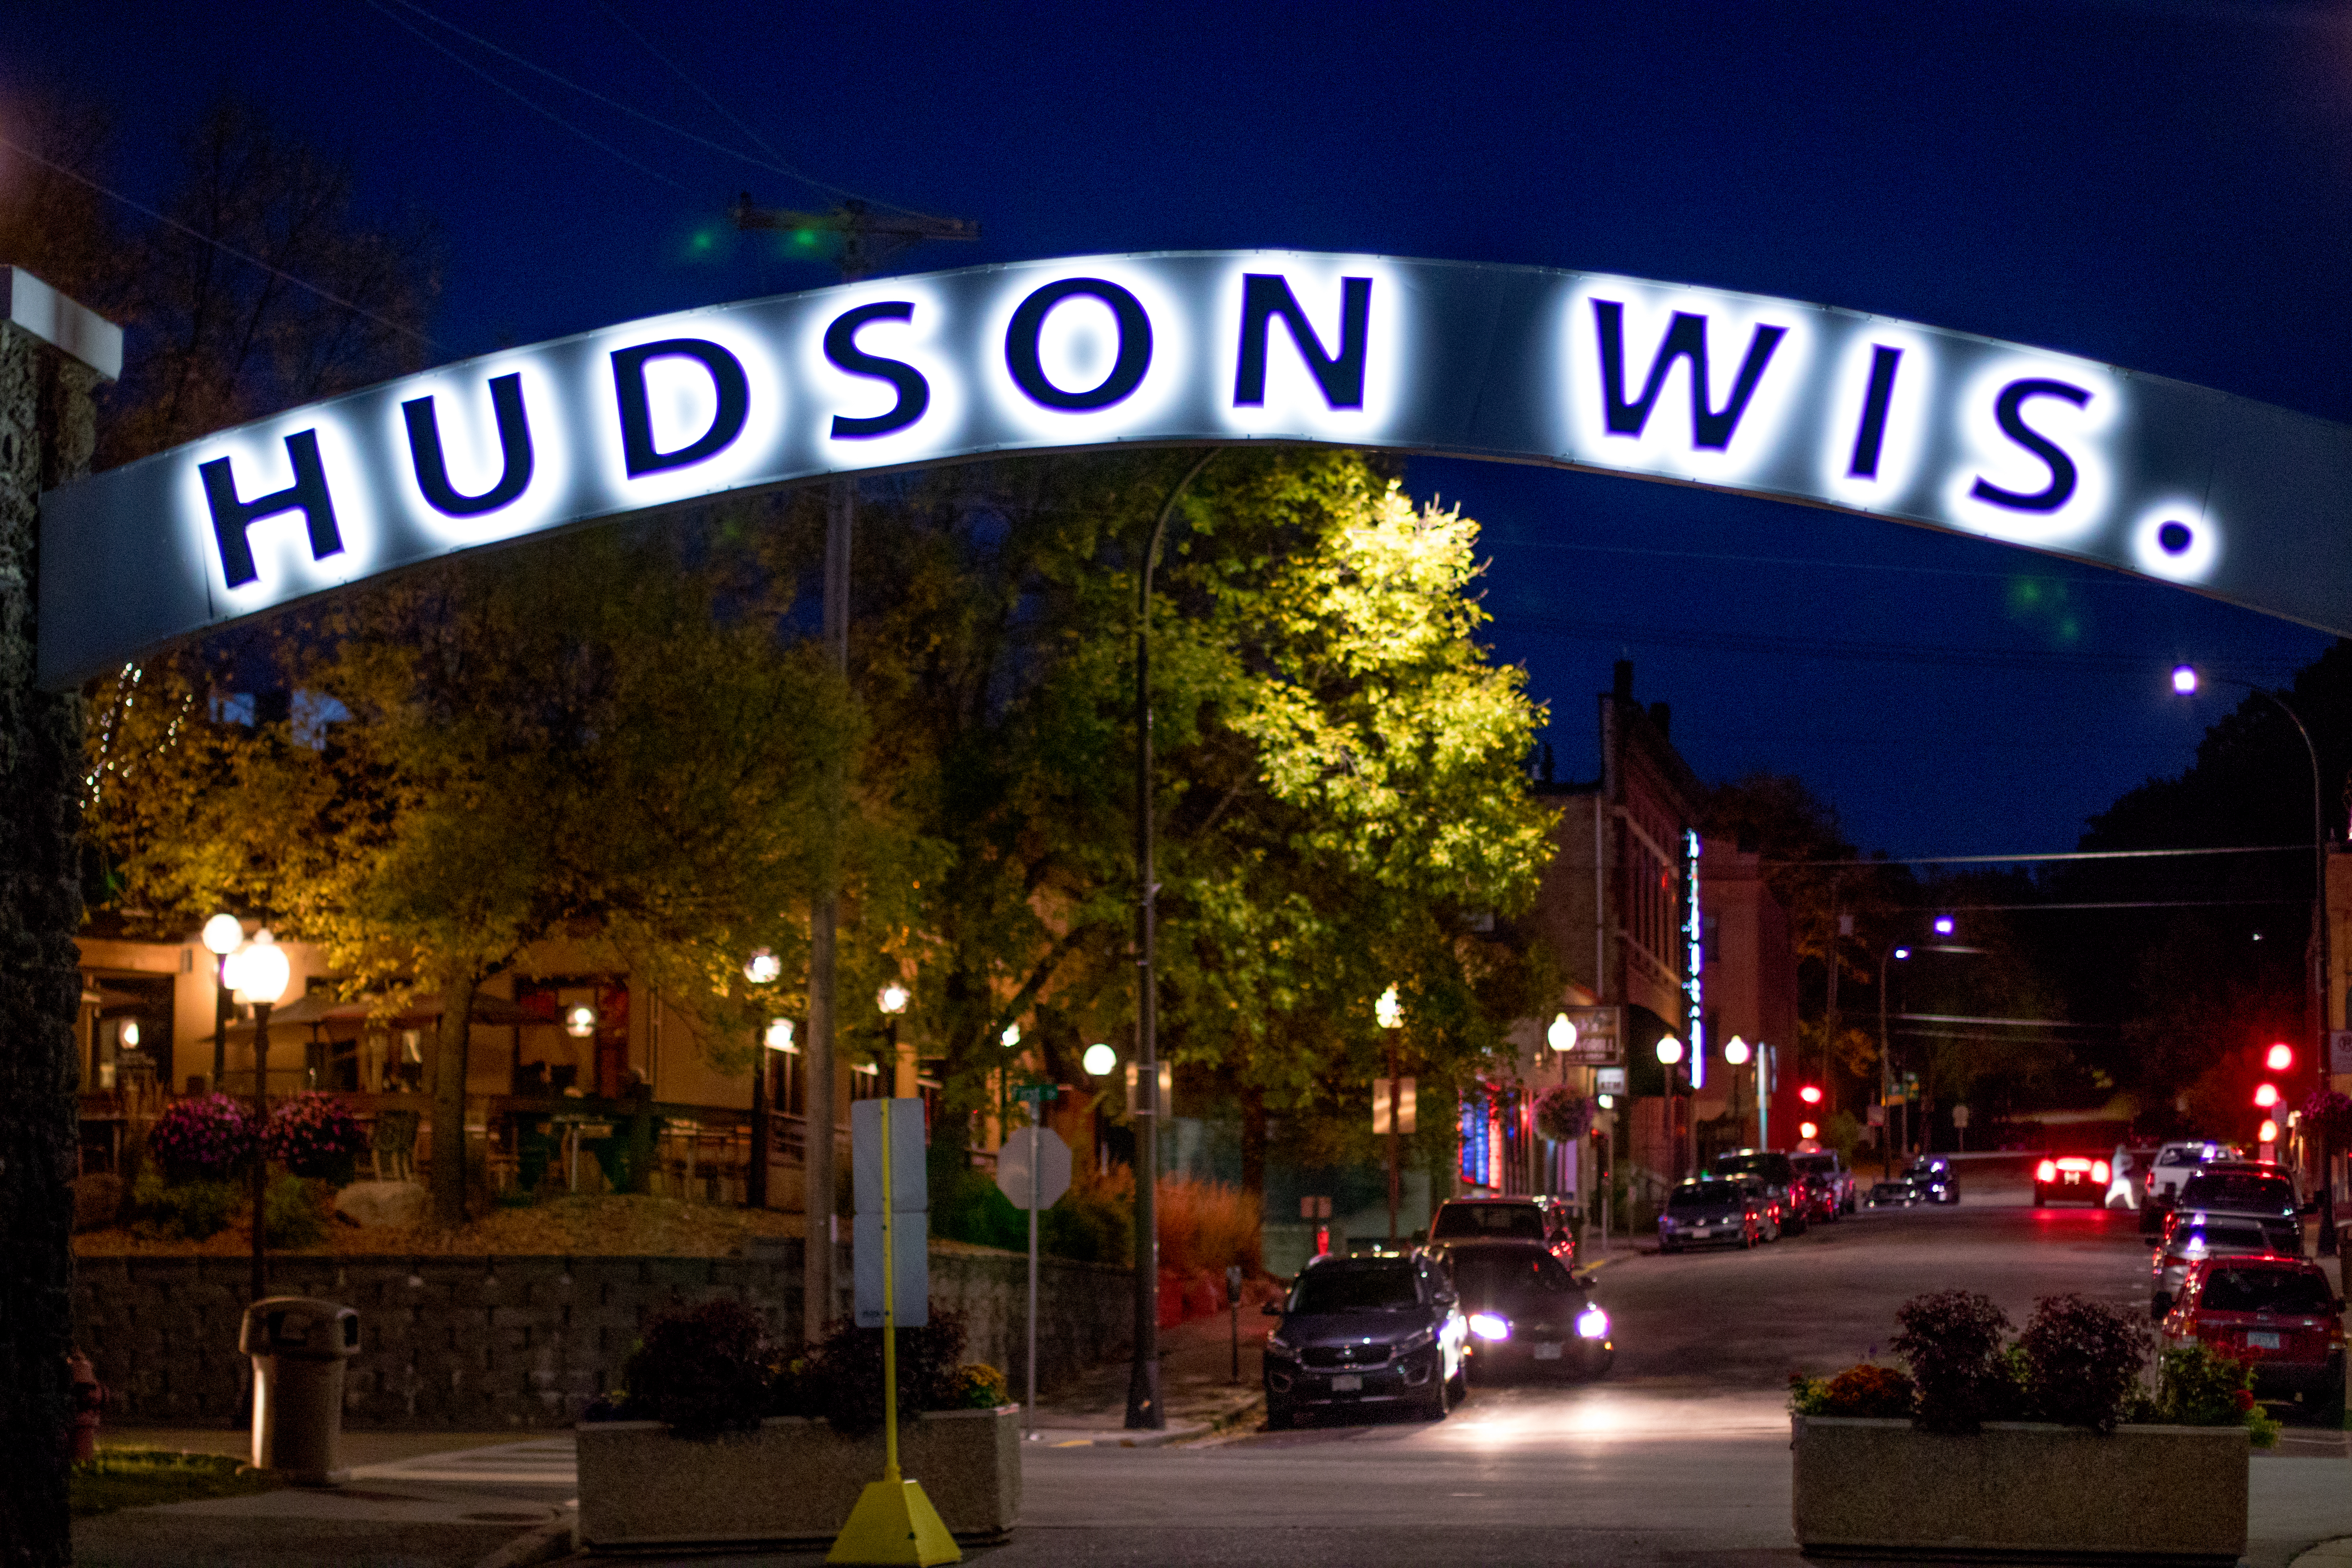 Hudson Wisconsin Sign Lit Up at Night